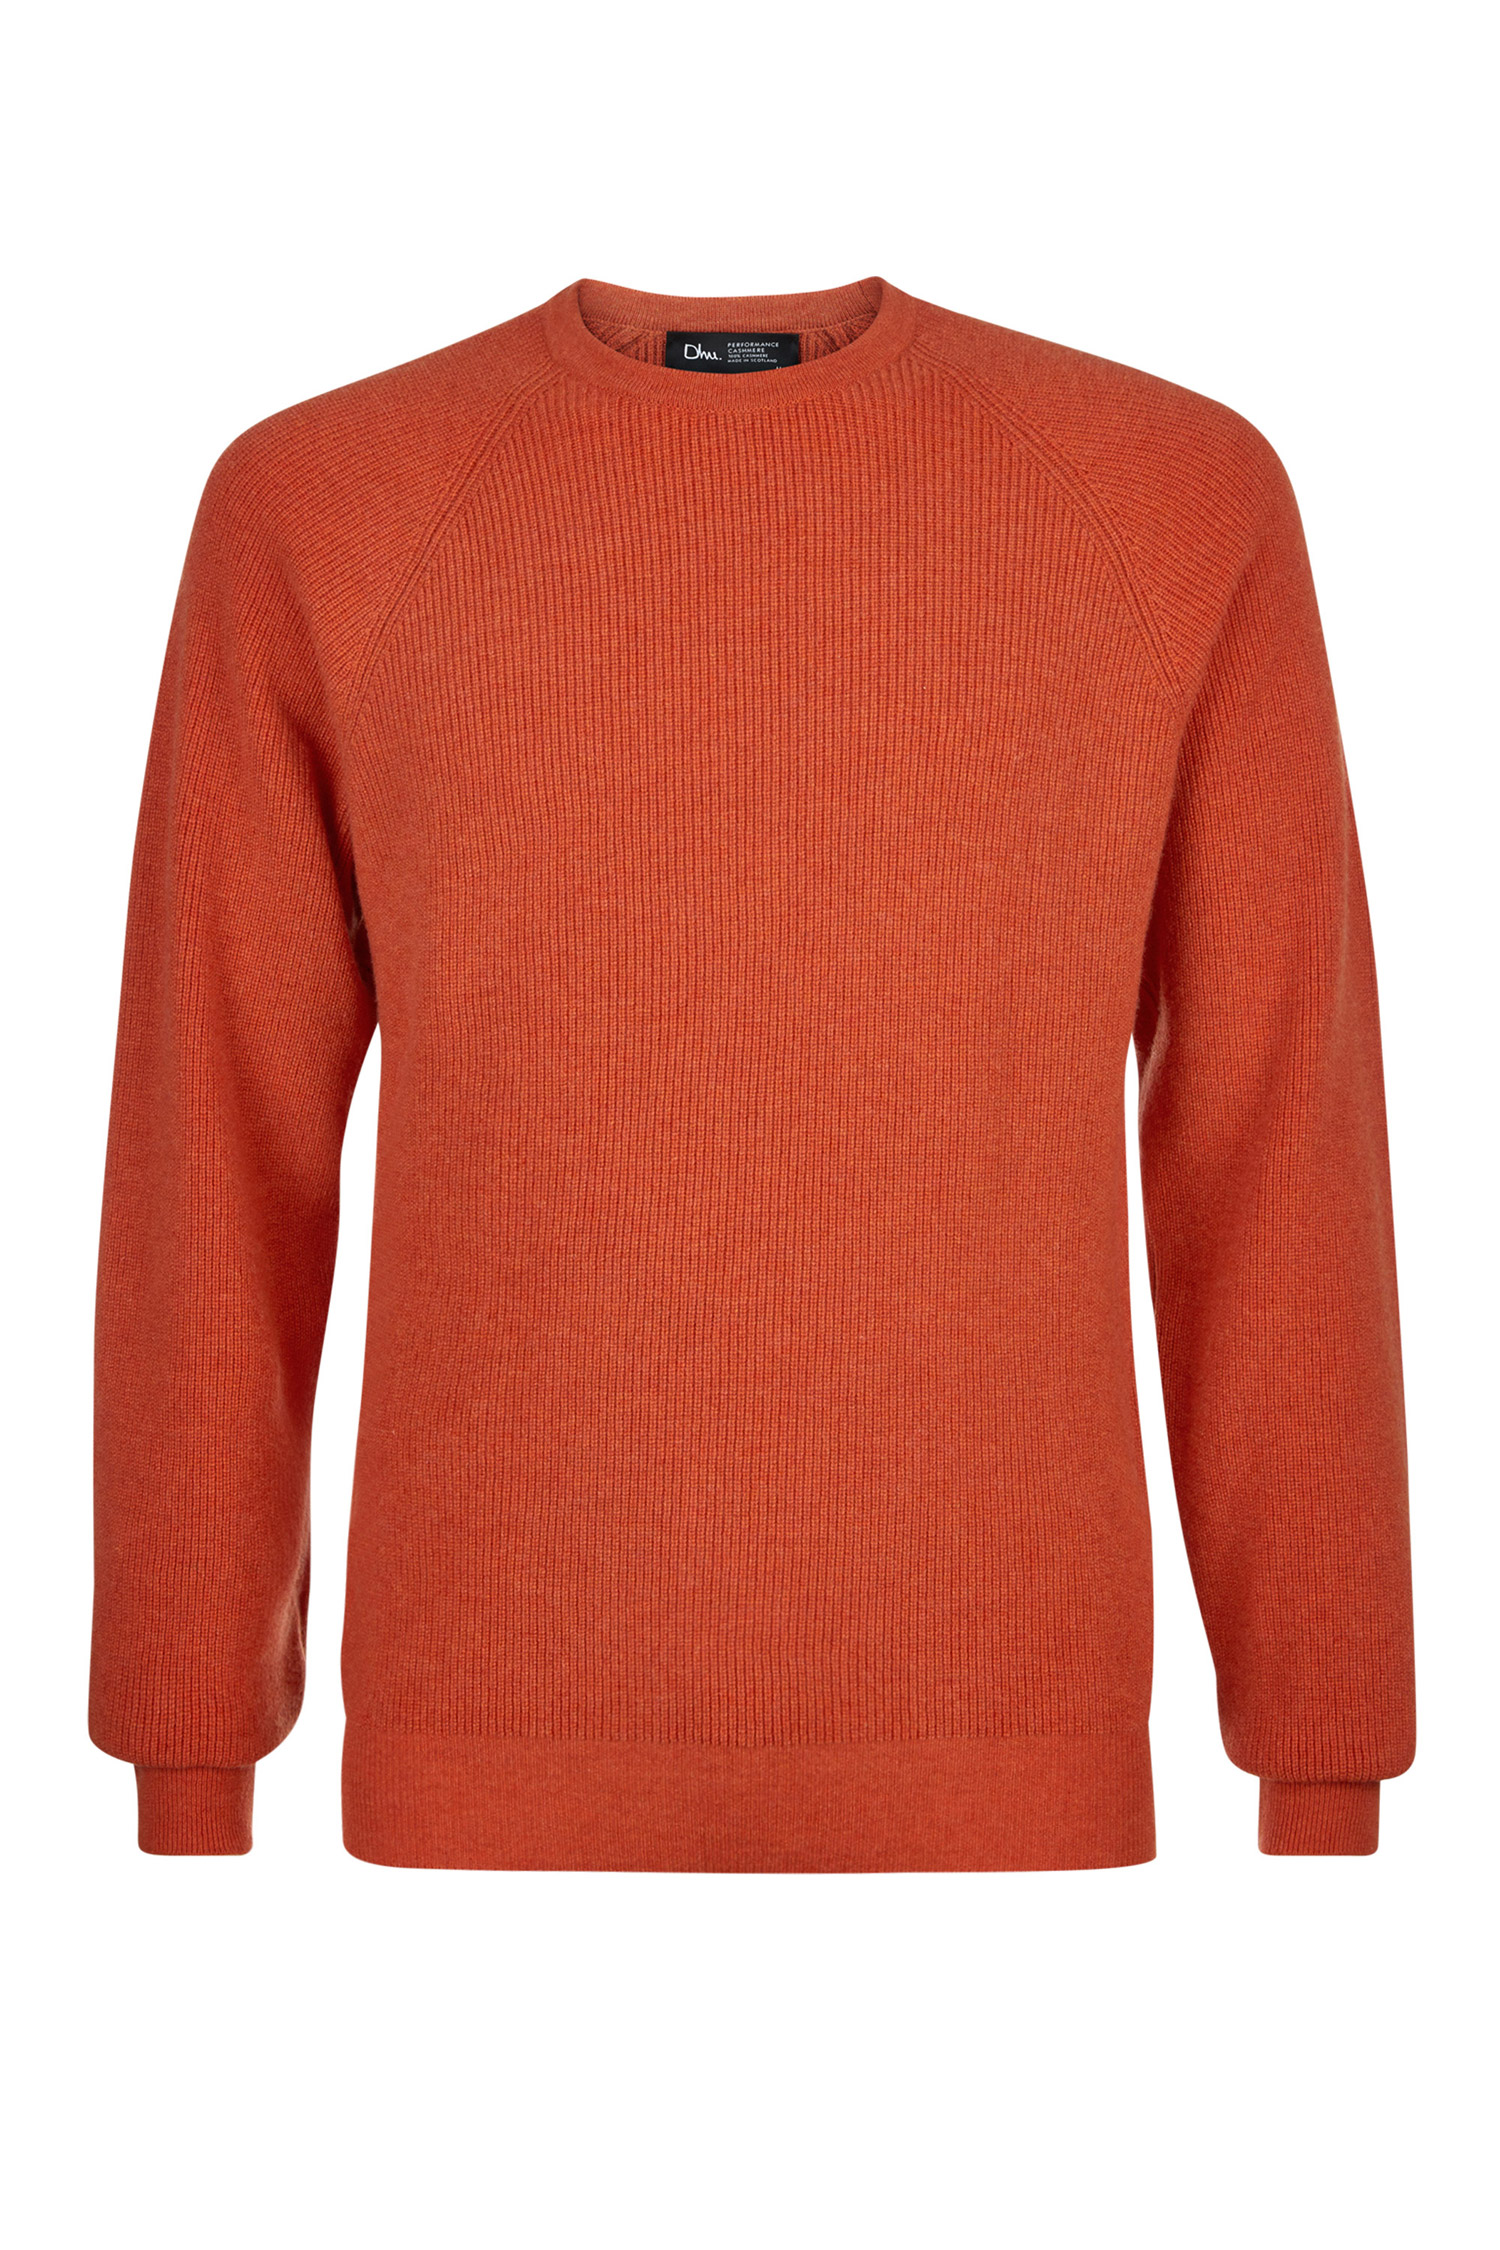 Men's Fisherman Ribbed Jersey - Dhu